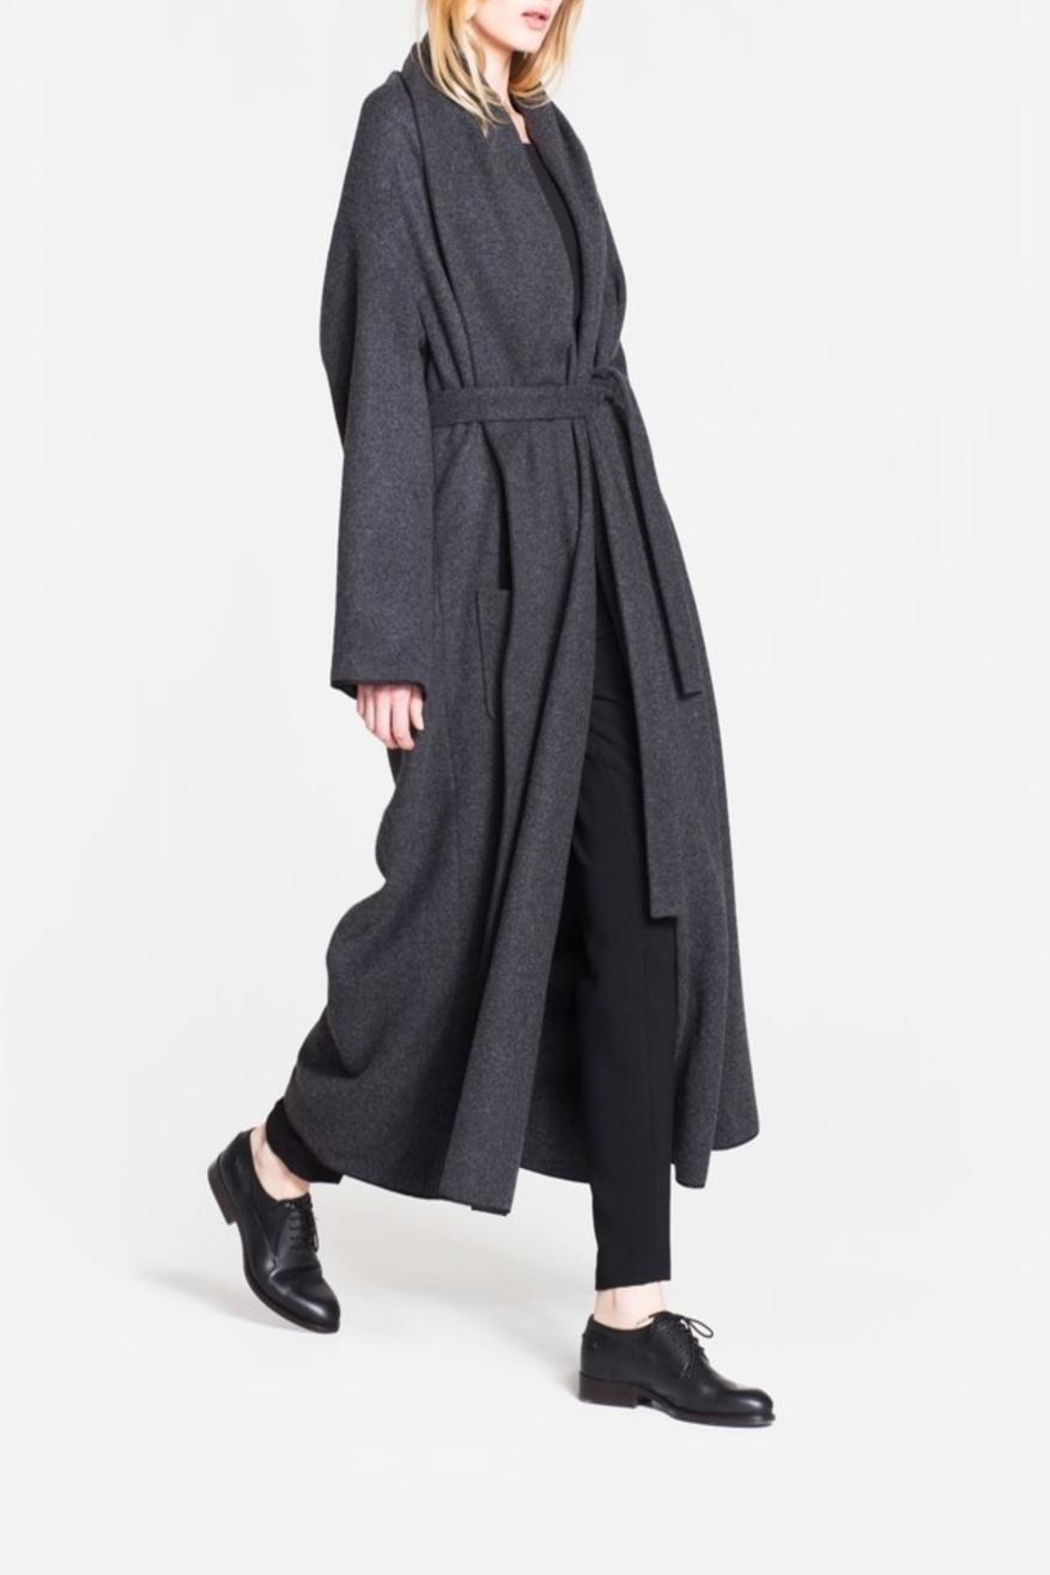 CYRILLE GASSILINE Belted Coat - Main Image